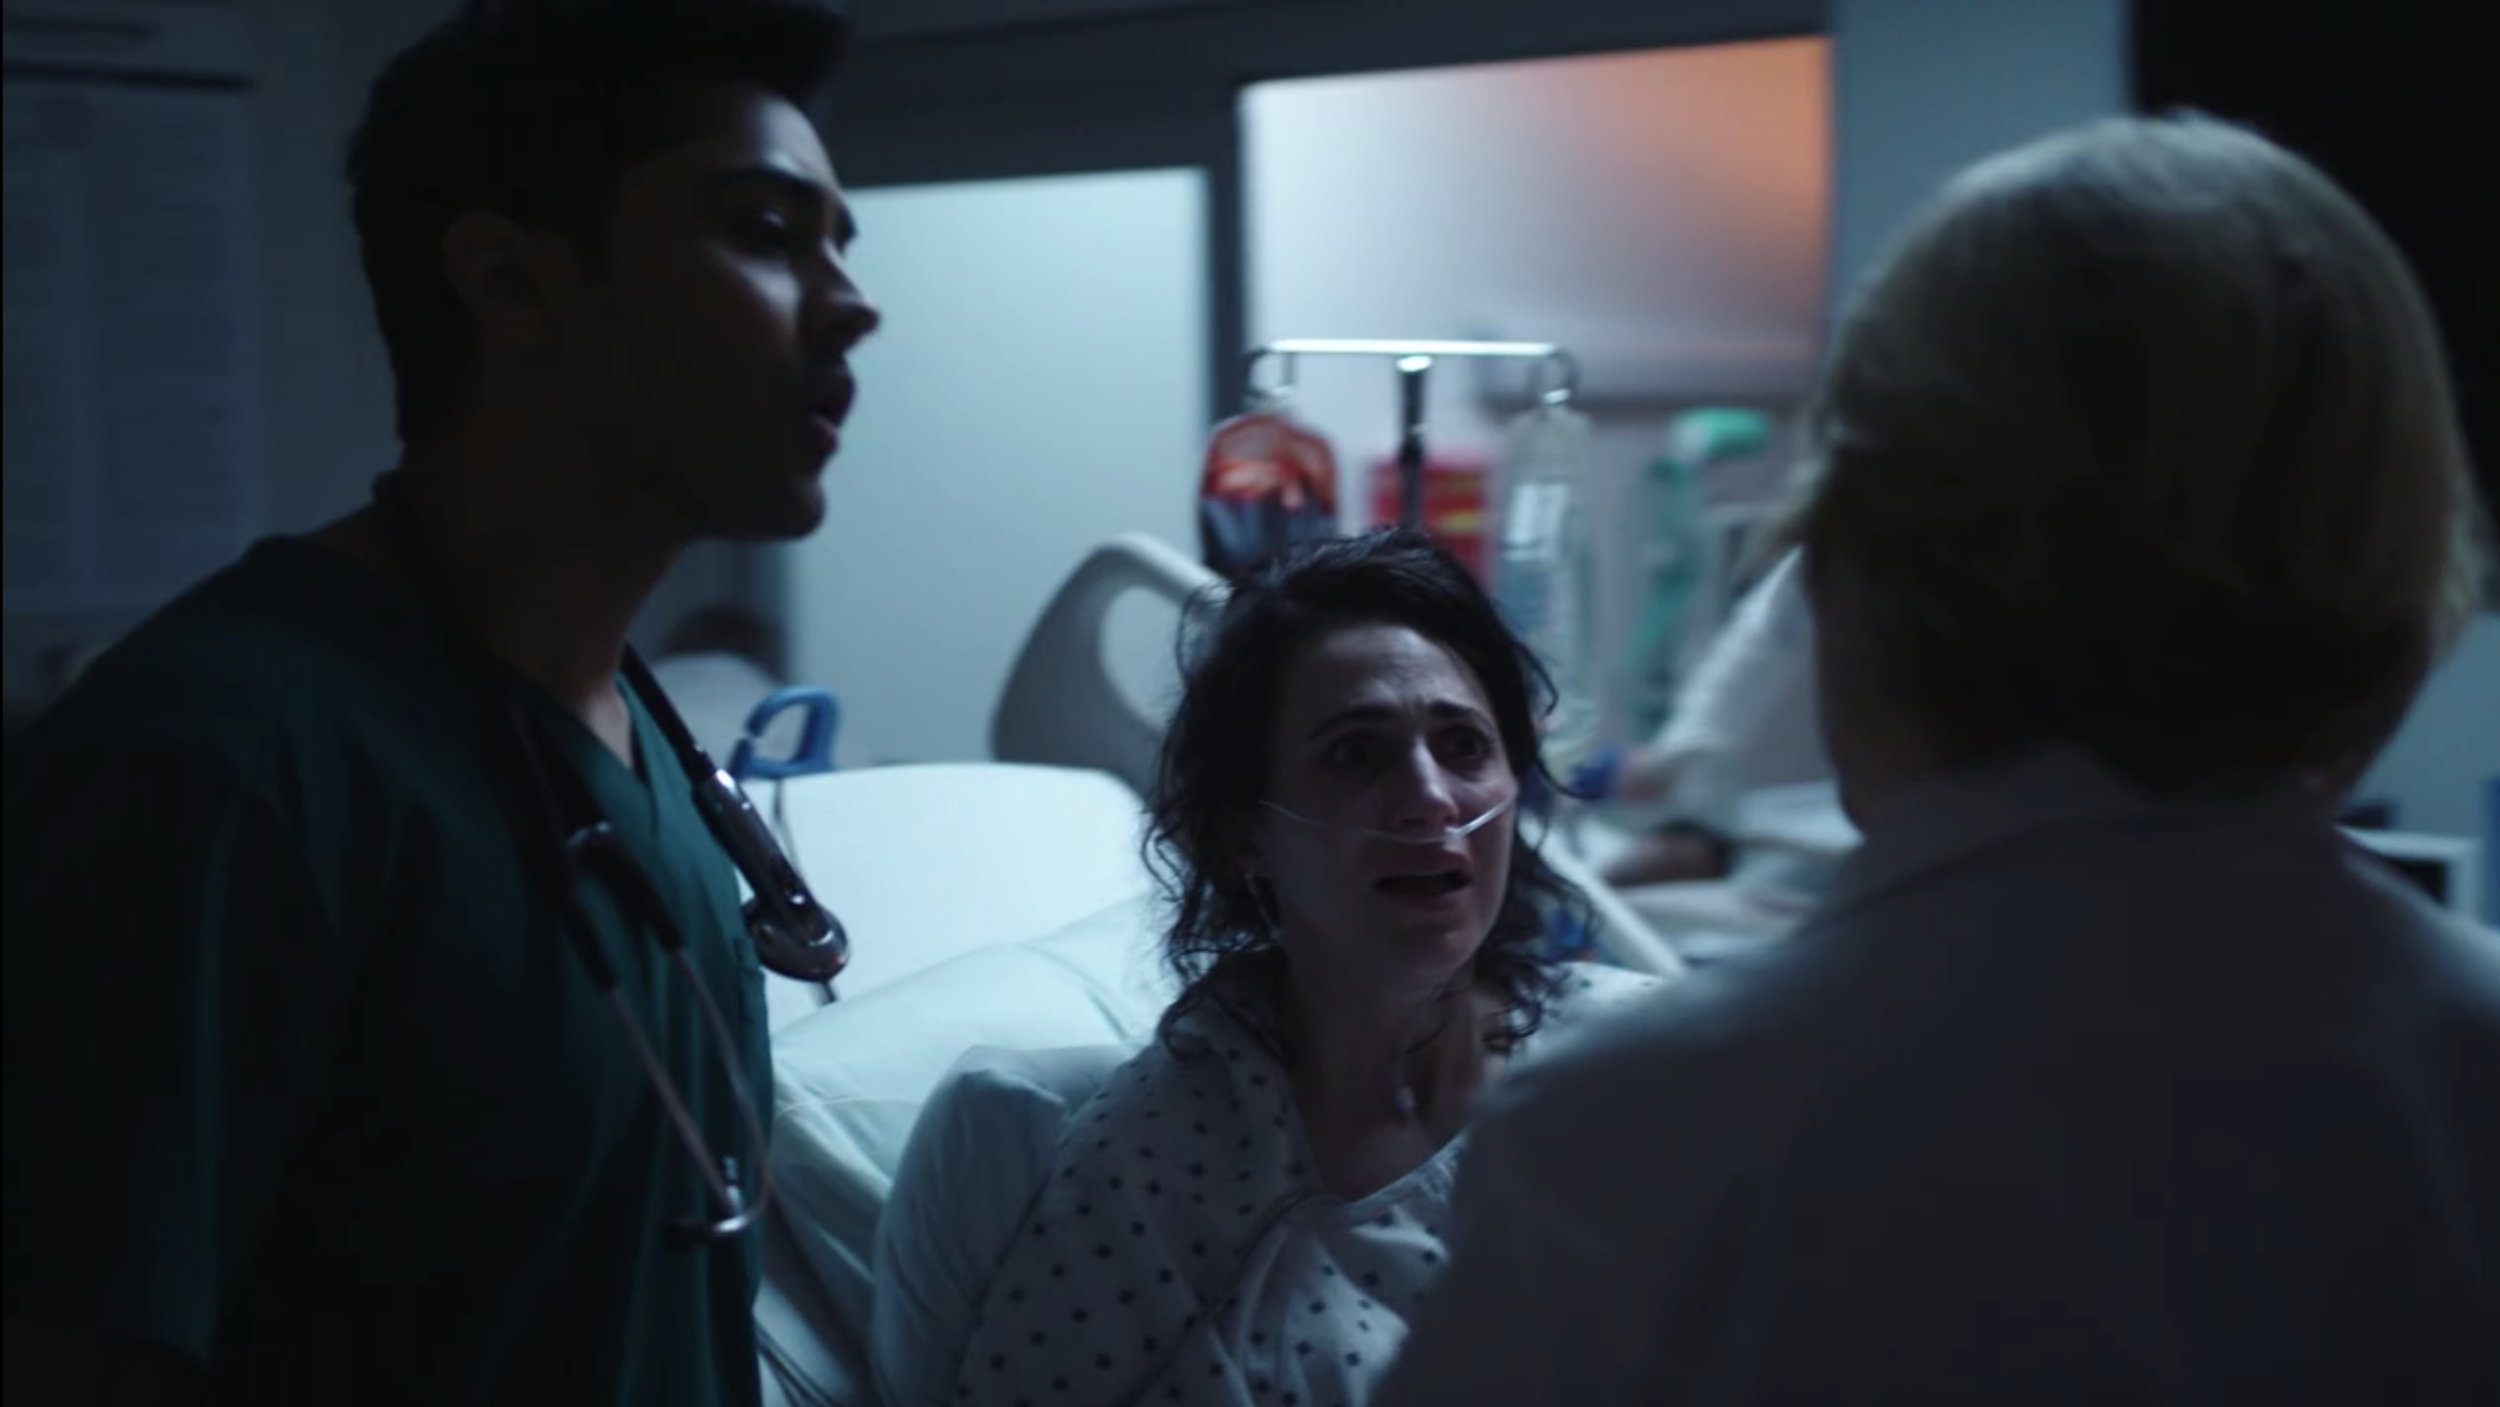 Adrienne_Whitney_Papp_The_ Resident_AdrienneWhitneyPapp_TheResident_S2E1_3.png